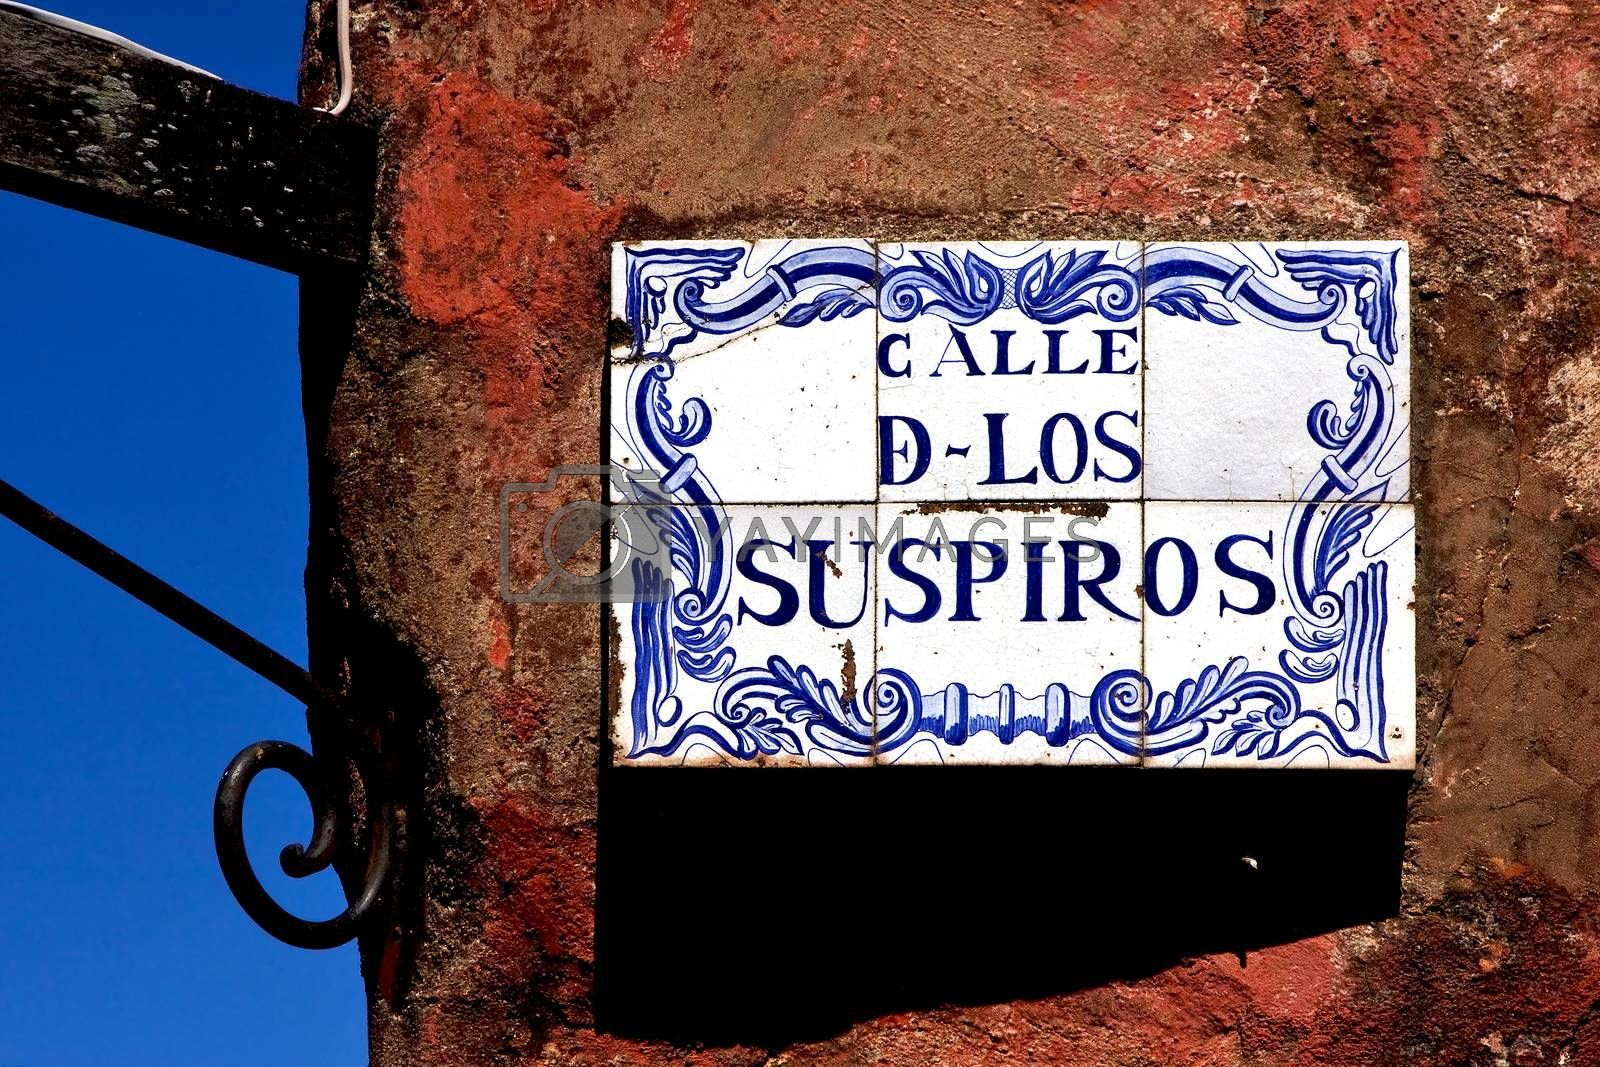 Royalty free image of plant and a wall in calle de los suspiros by lkpro